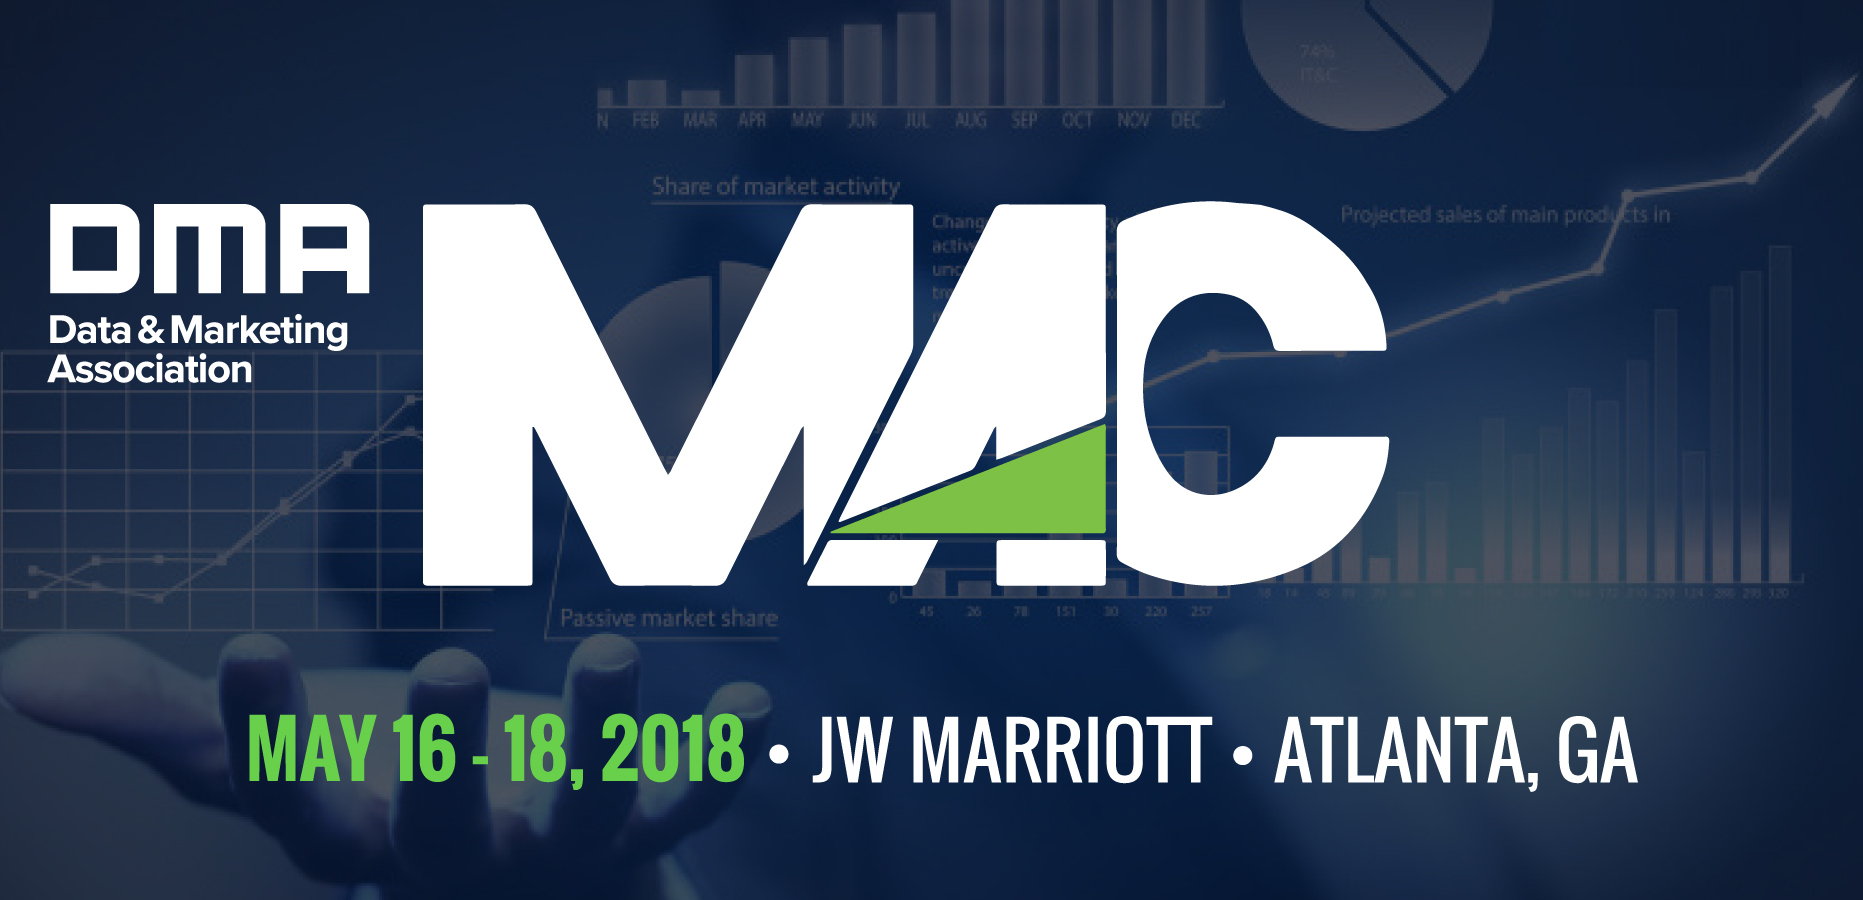 DMA's 2018 Marketing Analytics Conference